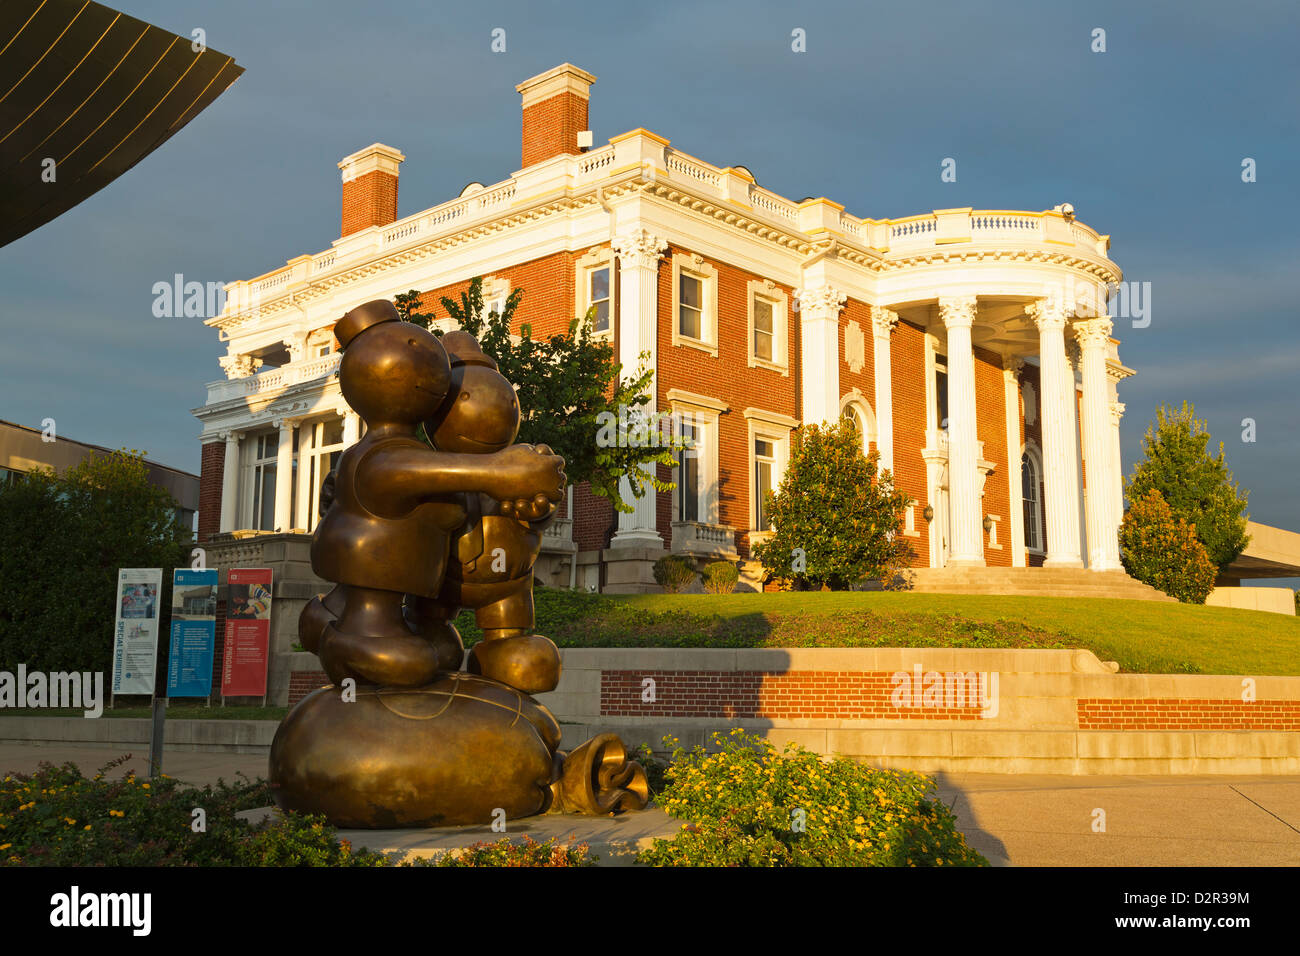 Hunter Museum of American Art, Bluff View Arts District, Chattanooga, Tennessee, United States of America, North - Stock Image